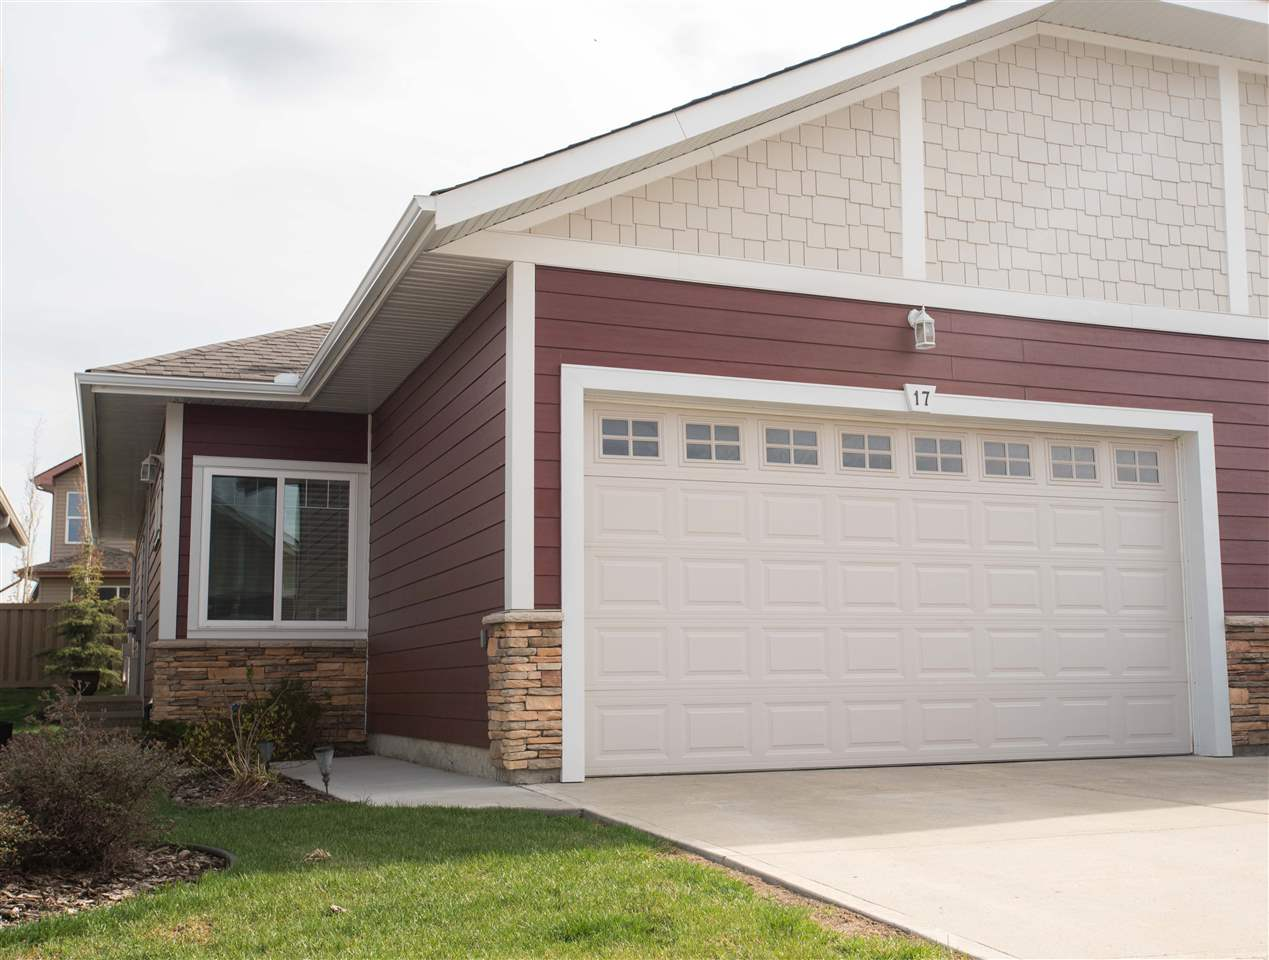 MLS® listing #E4157318 for sale located at 17 175 MCCONACHIE Drive NW